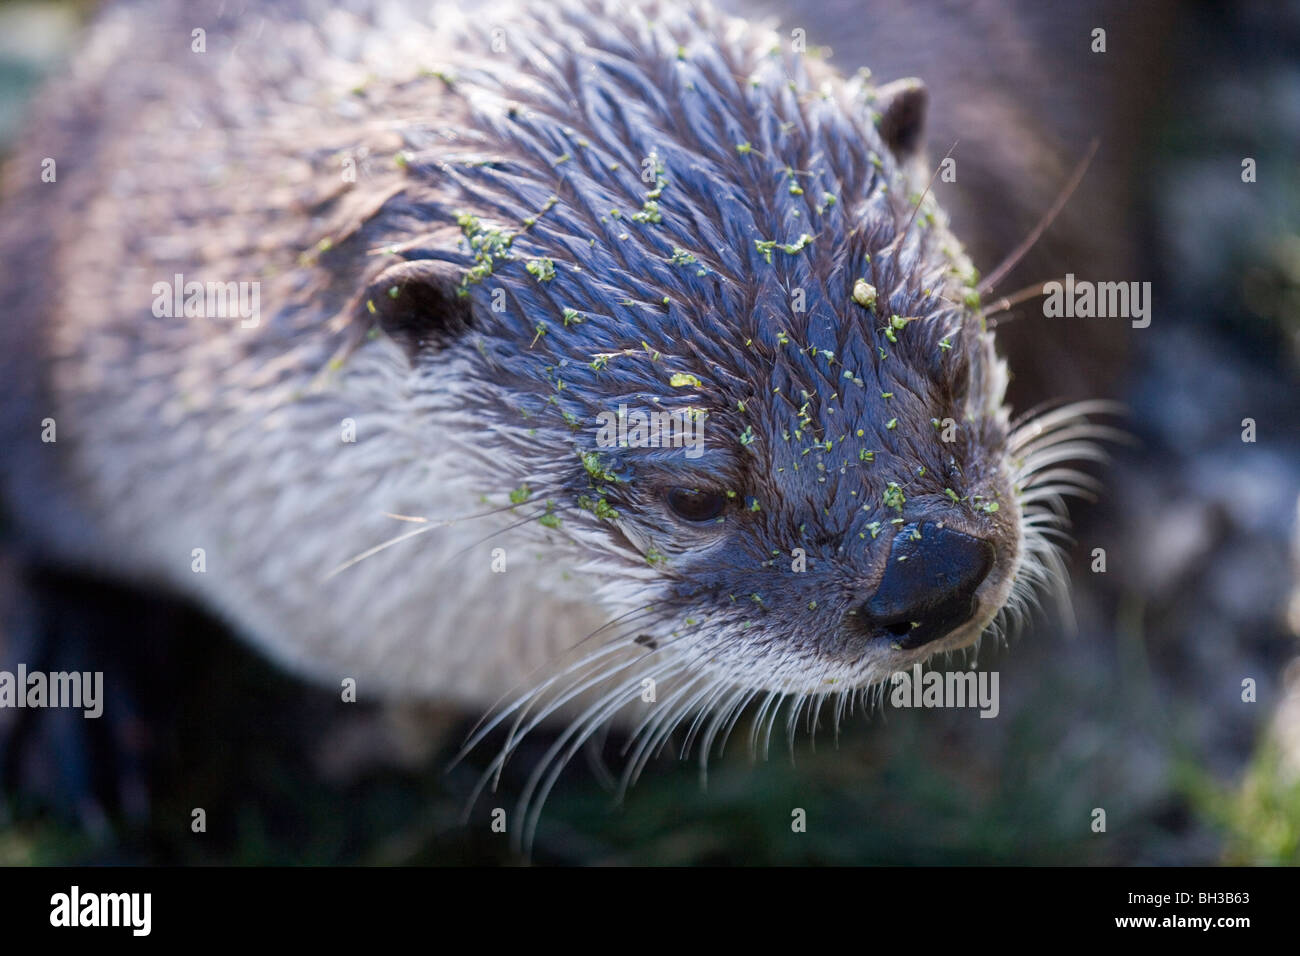 American River Otter (Lontra canadensis). Portrait. - Stock Image